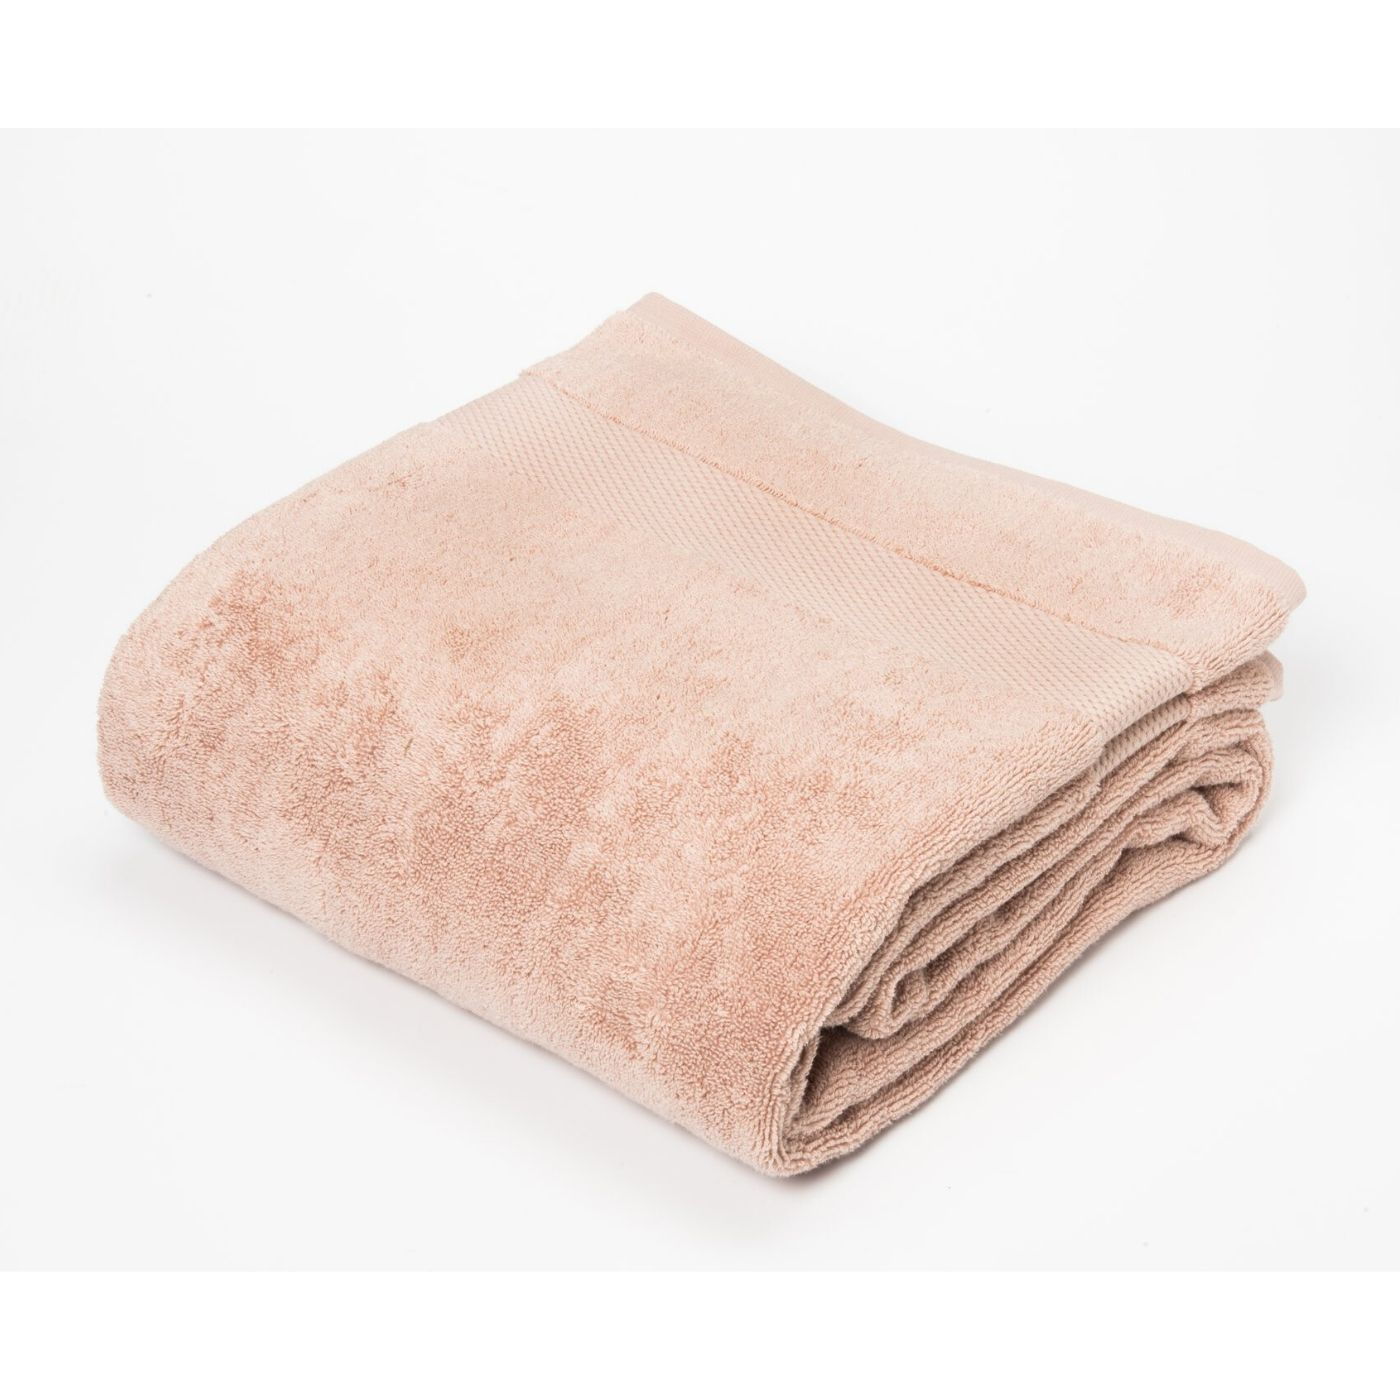 Serviette de bain Deluxe (Smoke rose)